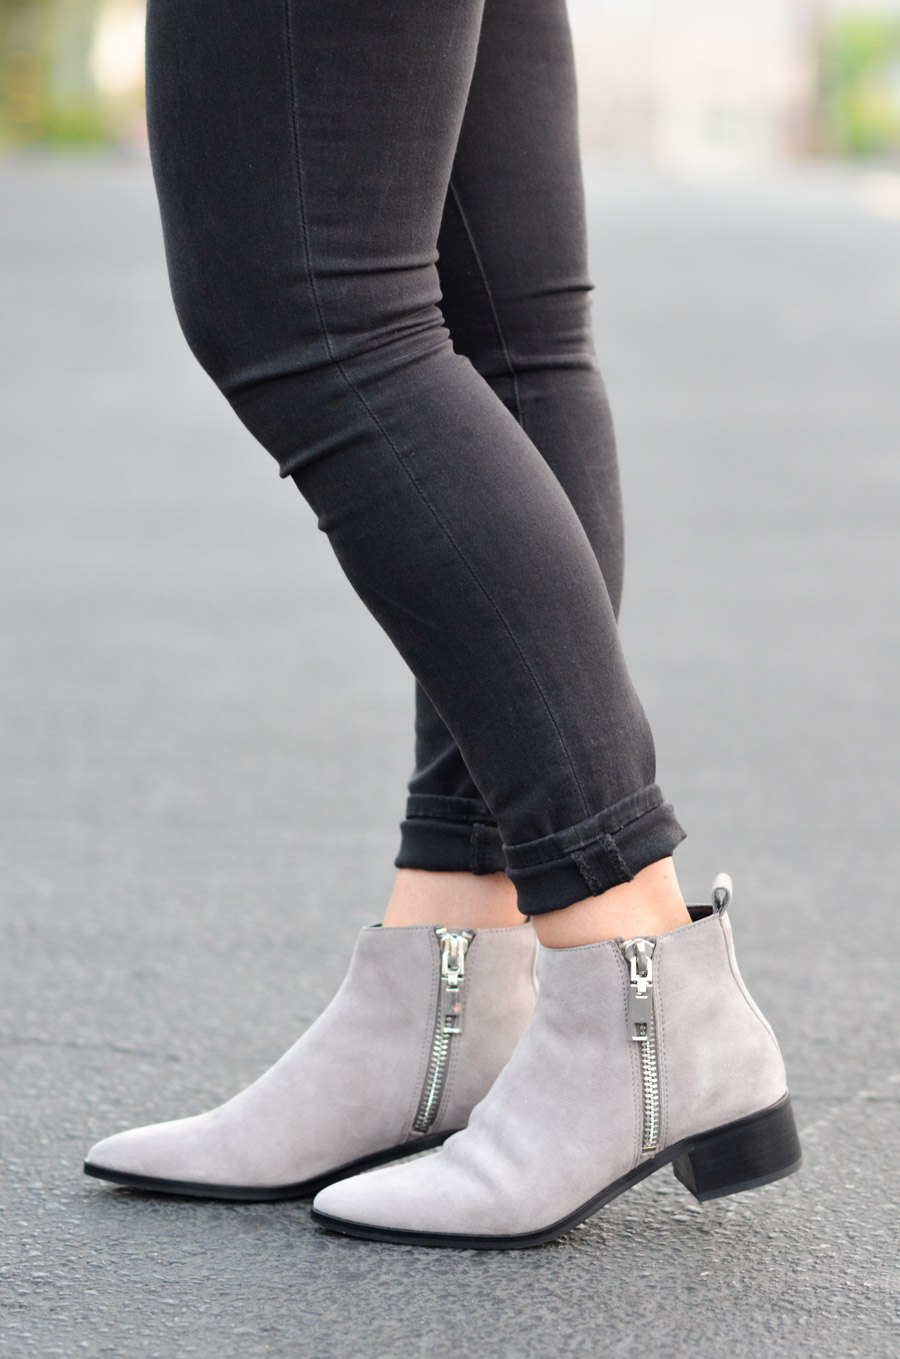 Dolce Vita Grey Suede Ankle Boots Outfit for Women